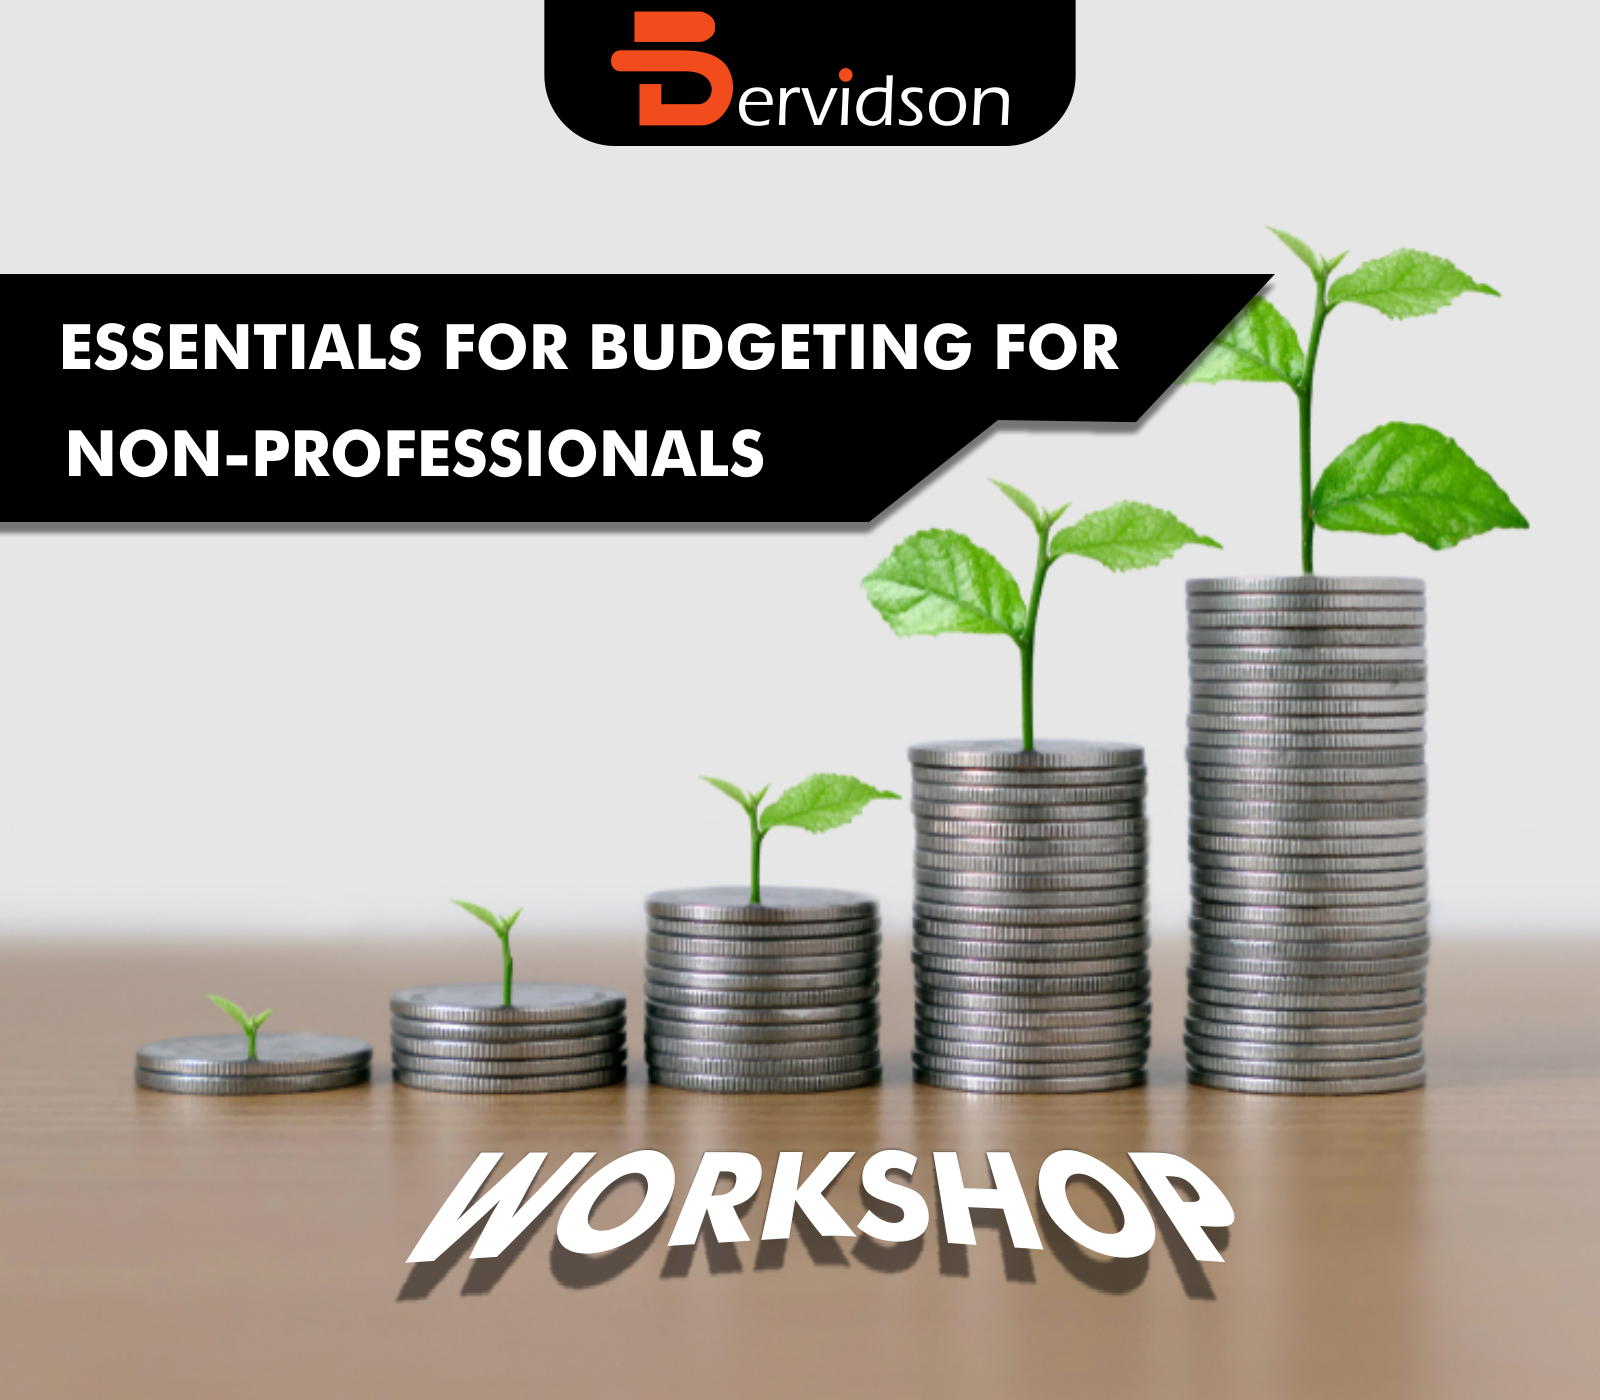 Essentials of Budgeting for Non-Professionals Workshop